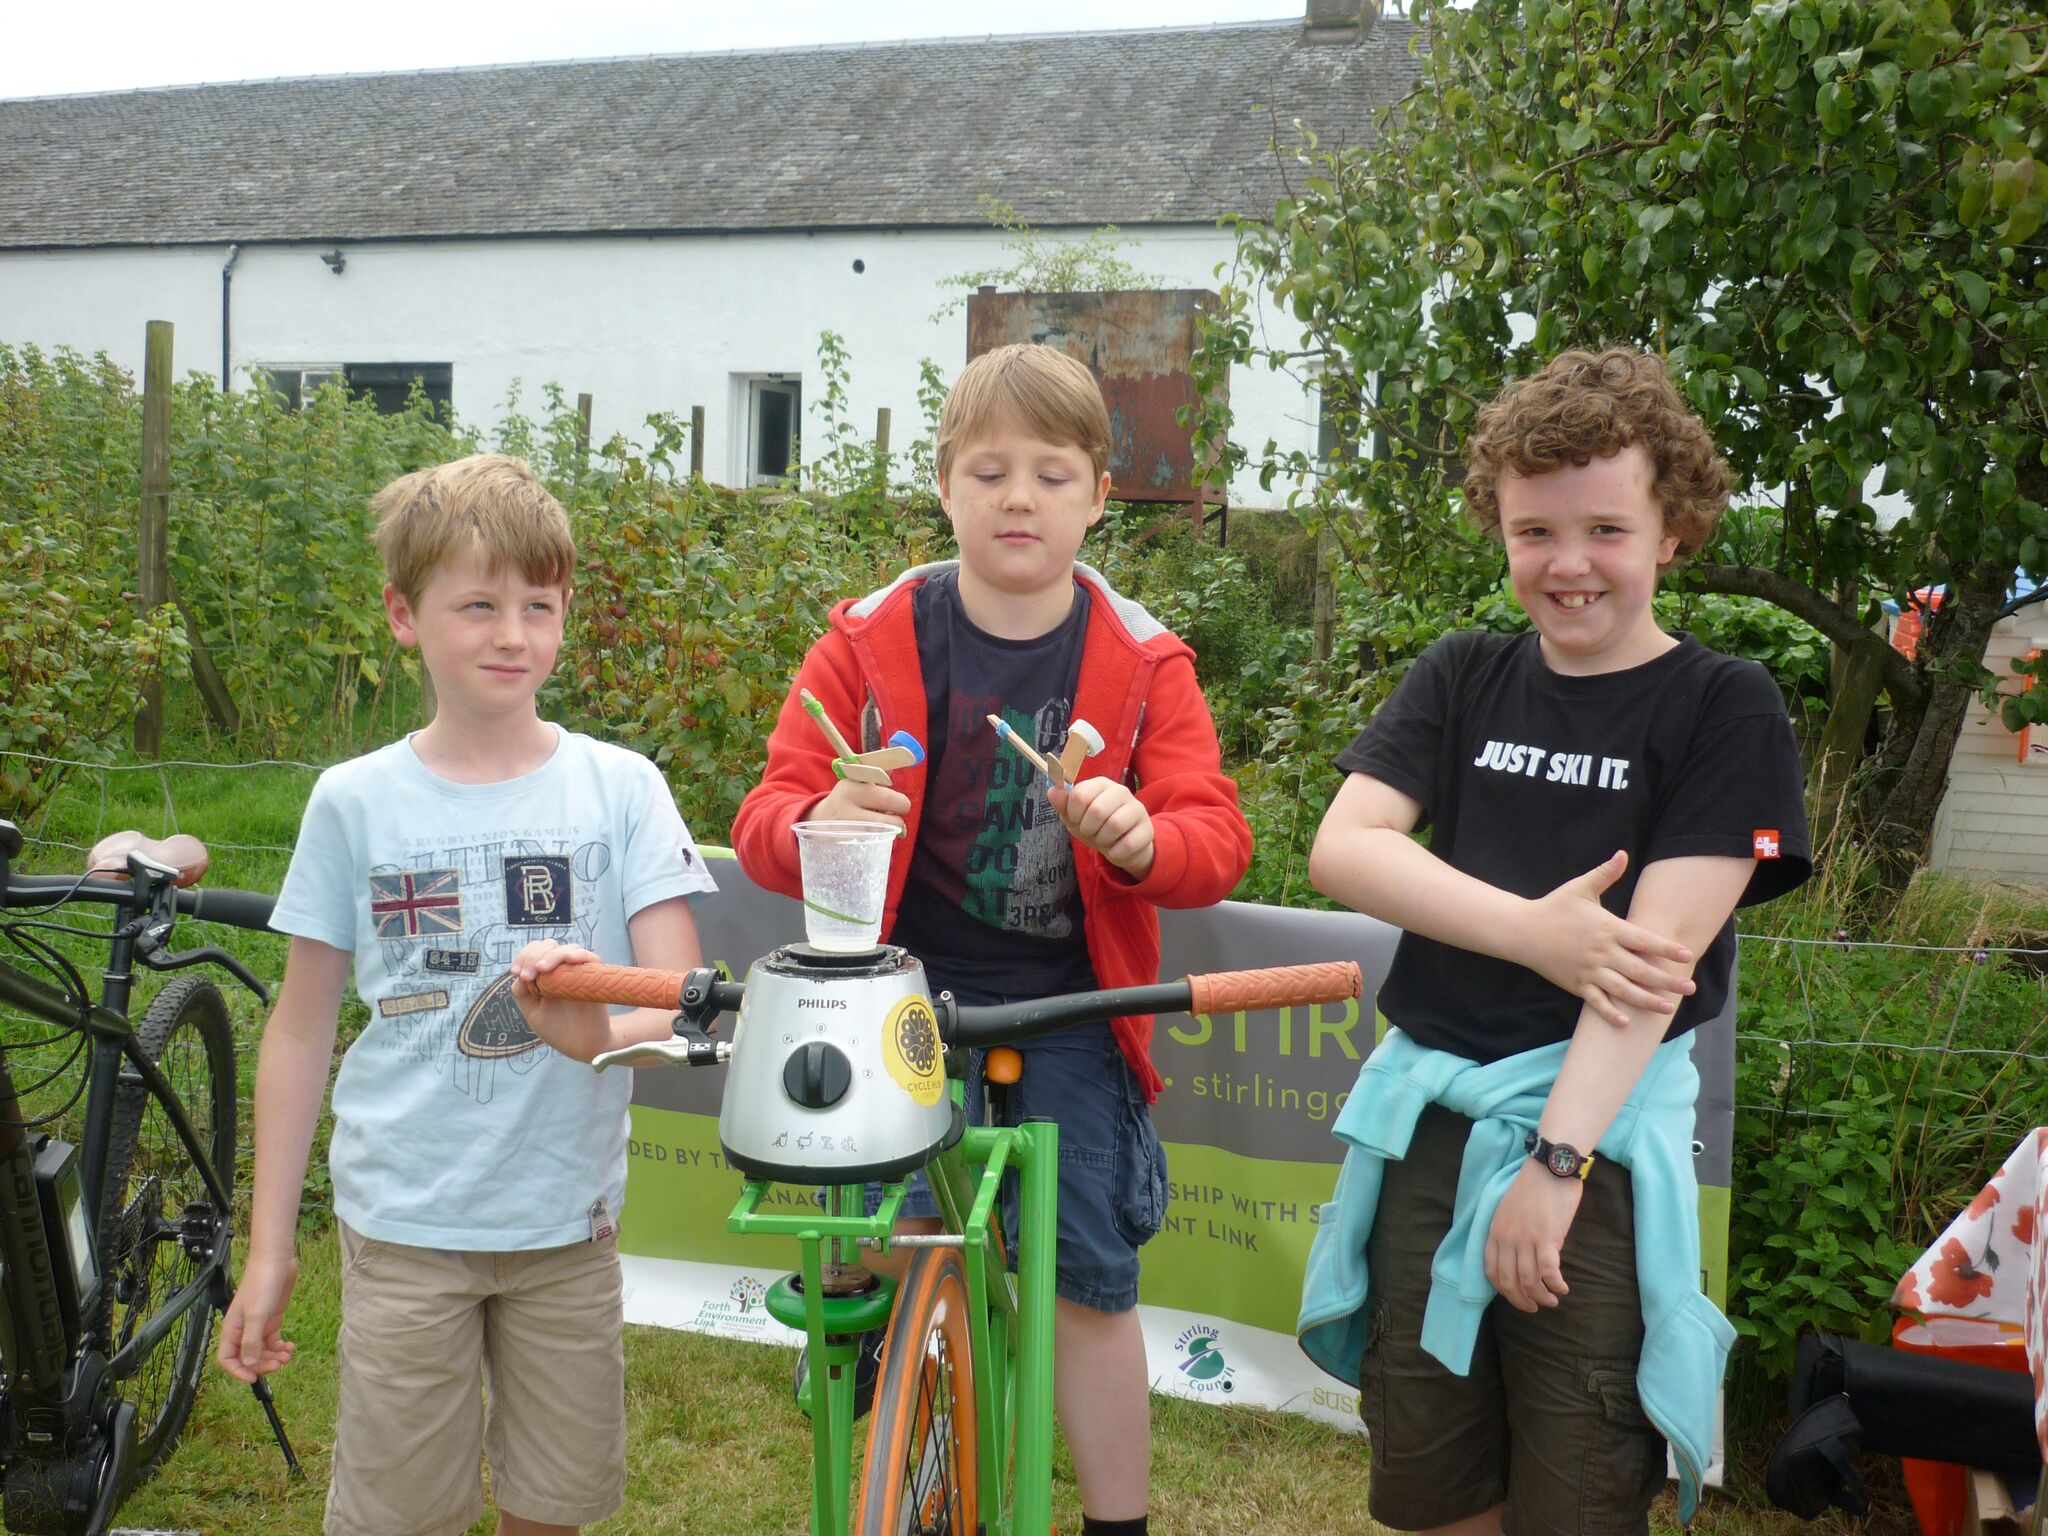 kids-and-bike-vrg-open-day-2016